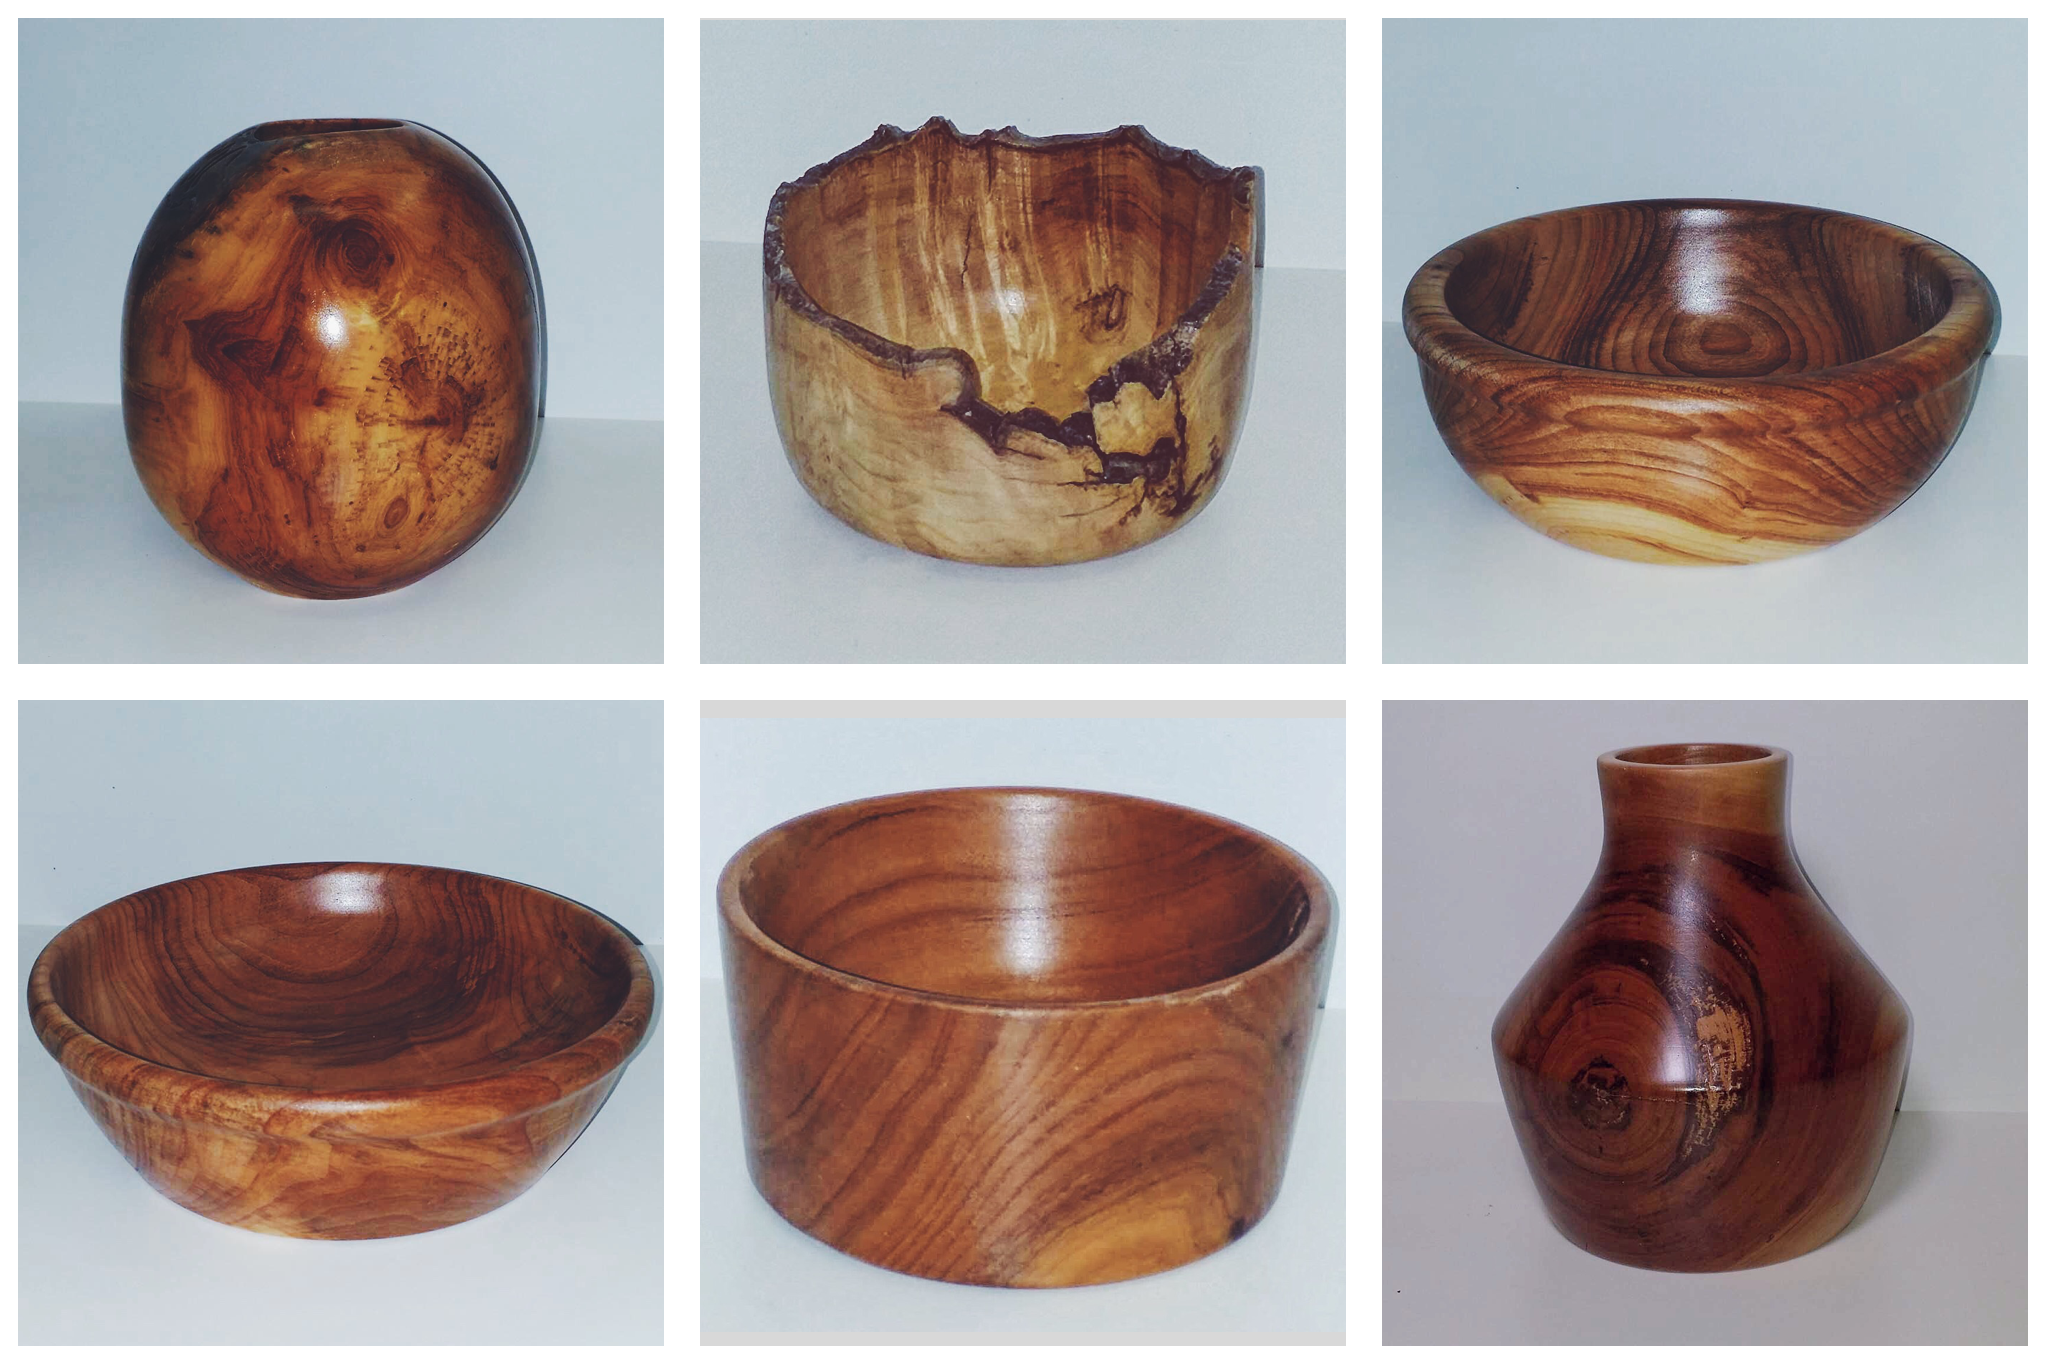 A selection of just a few of our handmade wooden accessories that will be available for purchase soon!